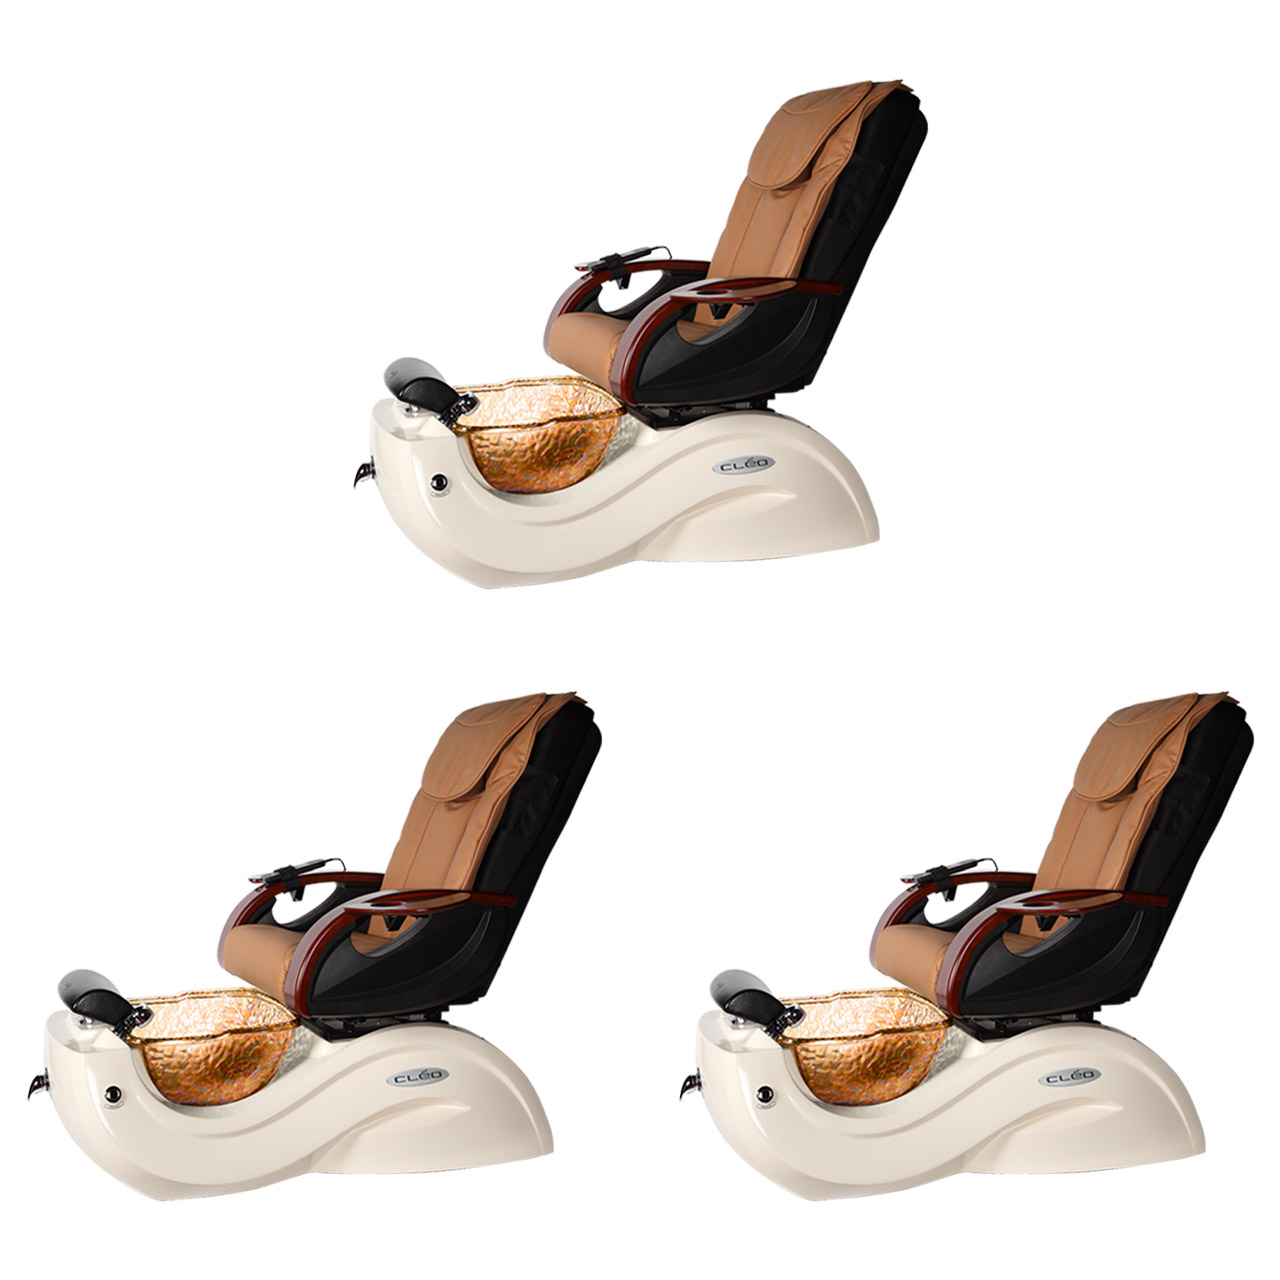 Mocha 3 Cleo GX Spa Chair Nail Salon Furniture Package With 2 Manicure Stations alternative product image 1